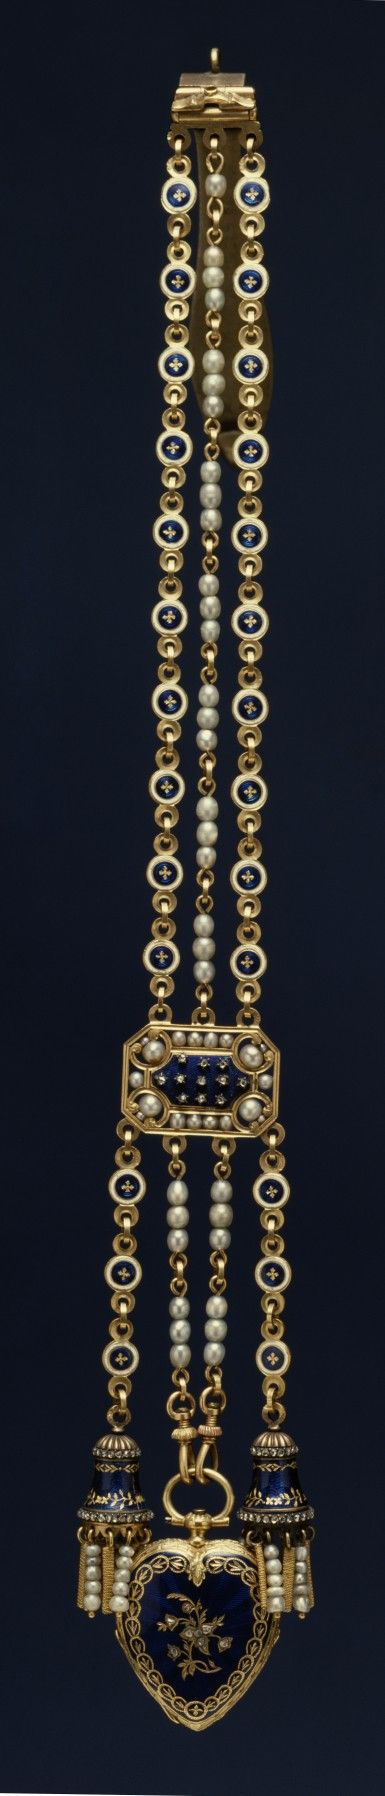 Heart-Shaped Watch and Chatelaine, gold, blue translucent enamel, brilliants and pearls. Swiss, circa 1830-1839